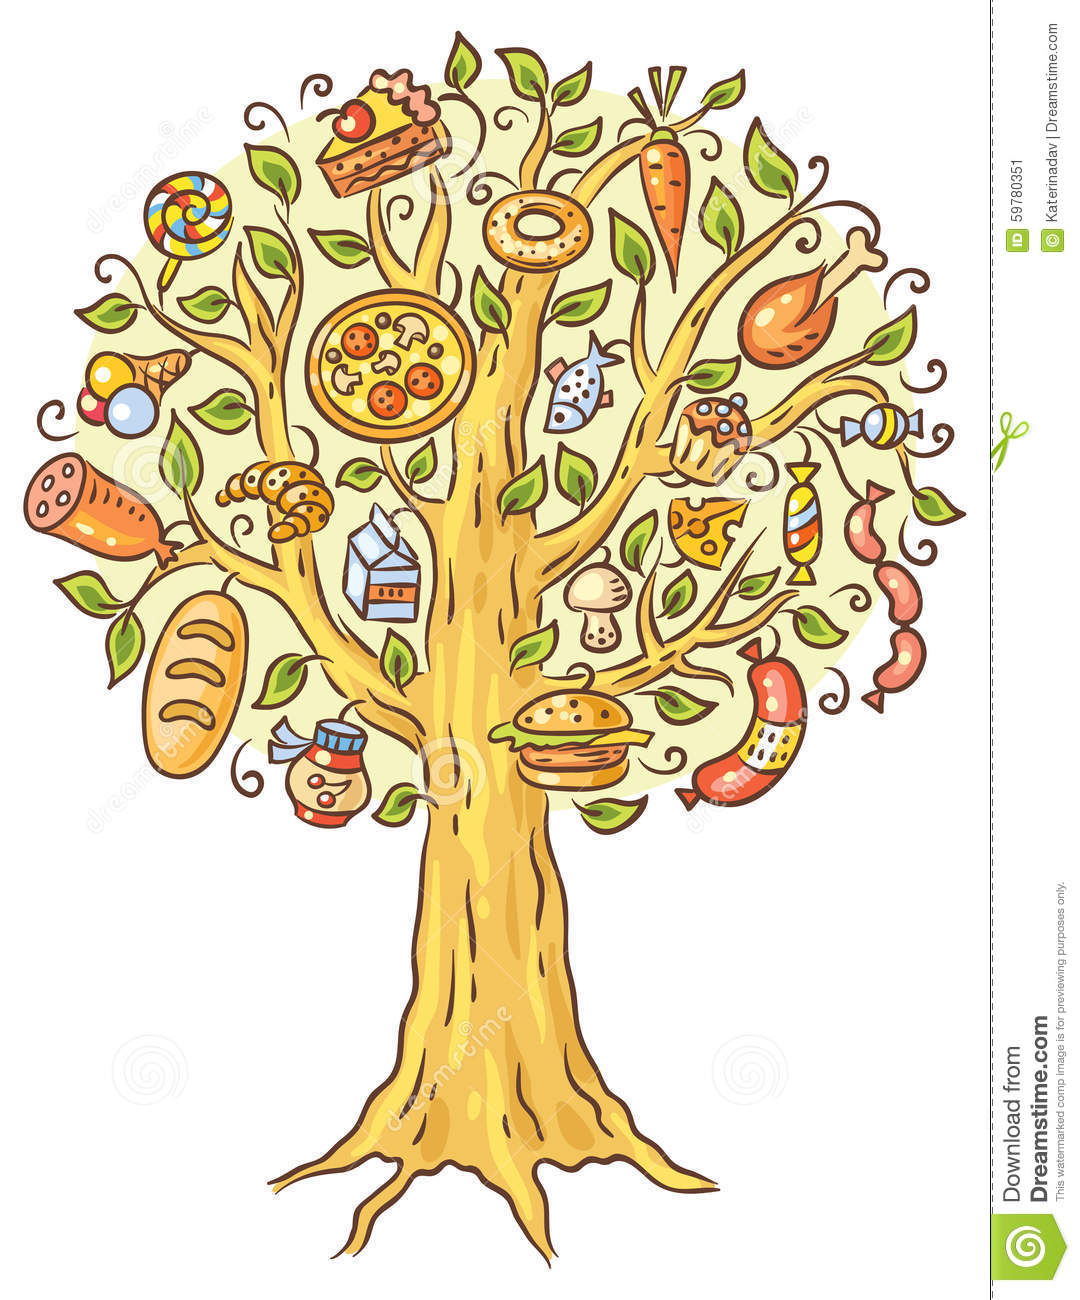 Food from trees clipart vector black and white Cartoon Drawing Of Lots Of Ready-made Food Growing On Tree Stock ... vector black and white